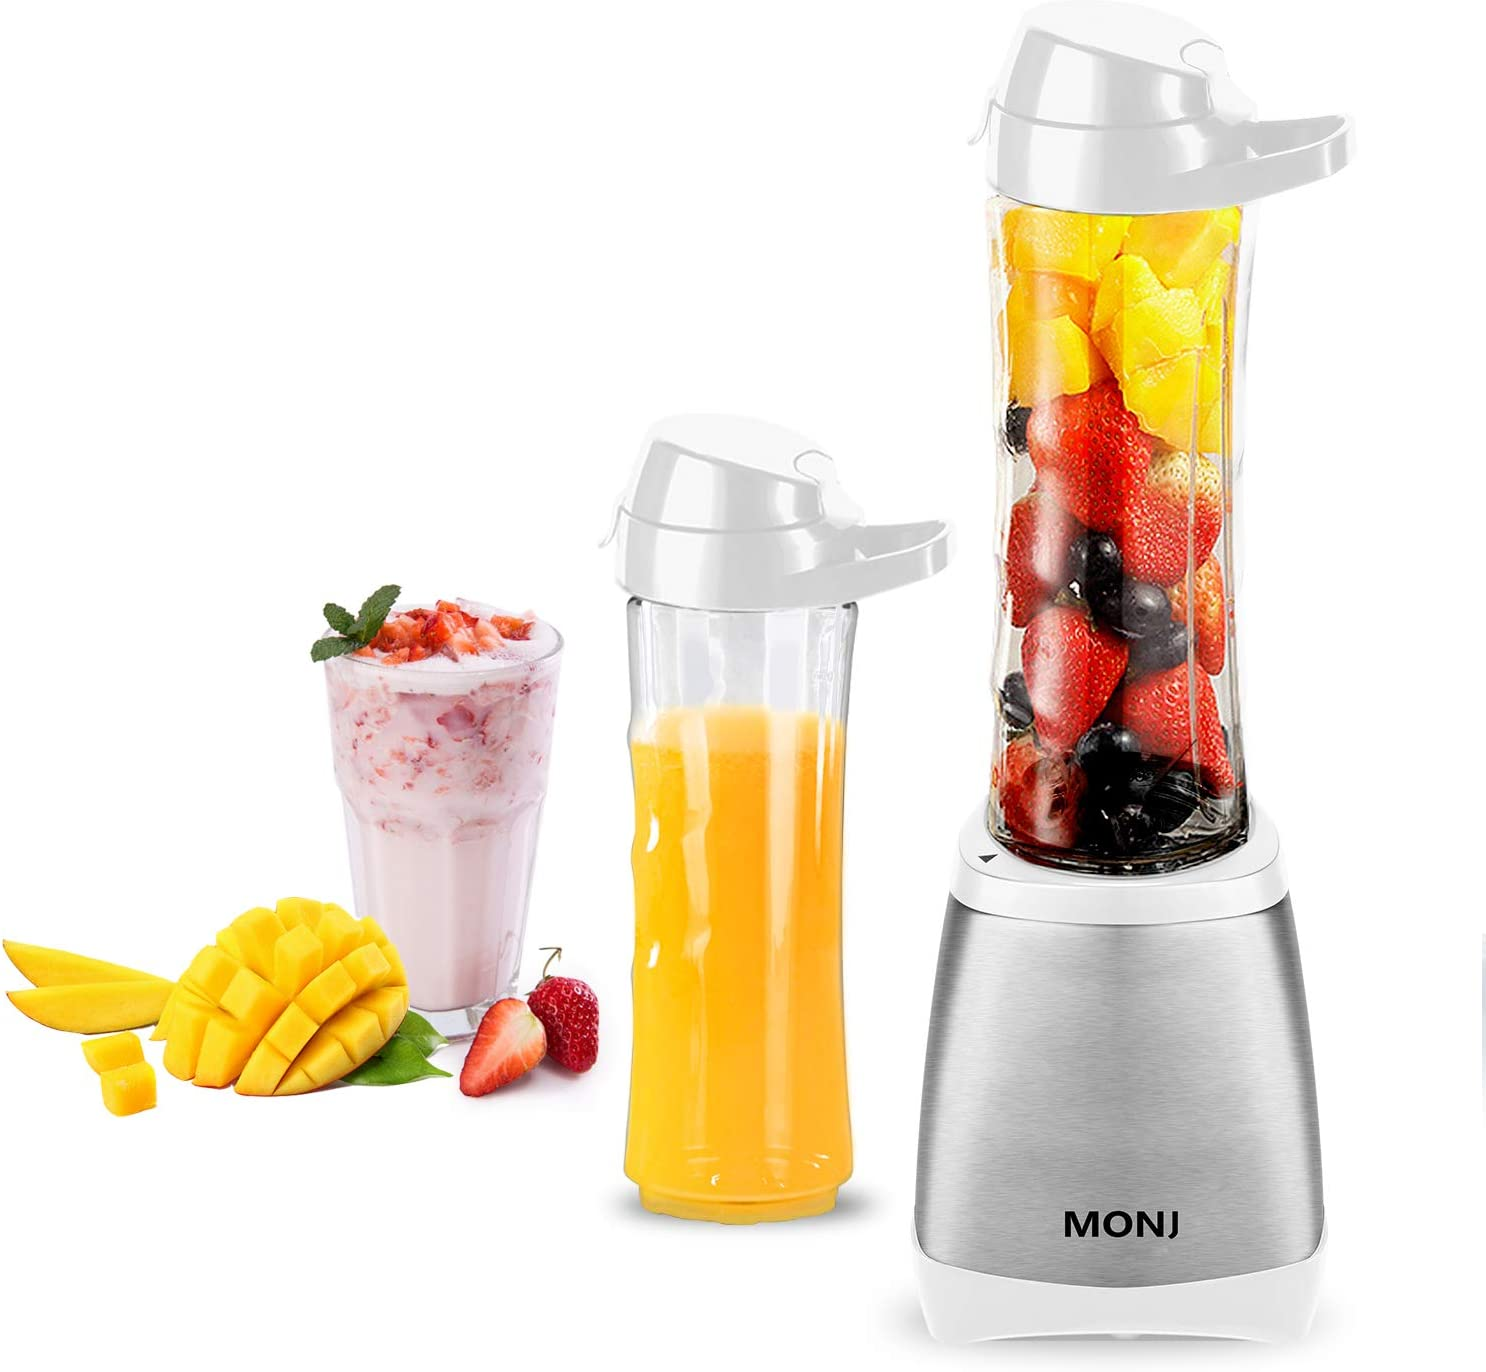 MONJ Personal Countertop Blender for Juices, Shakes and Smoothies, 300W Single Serve Small Blender with 2x20oz Tritan BPA-Free Sports Bottles-white